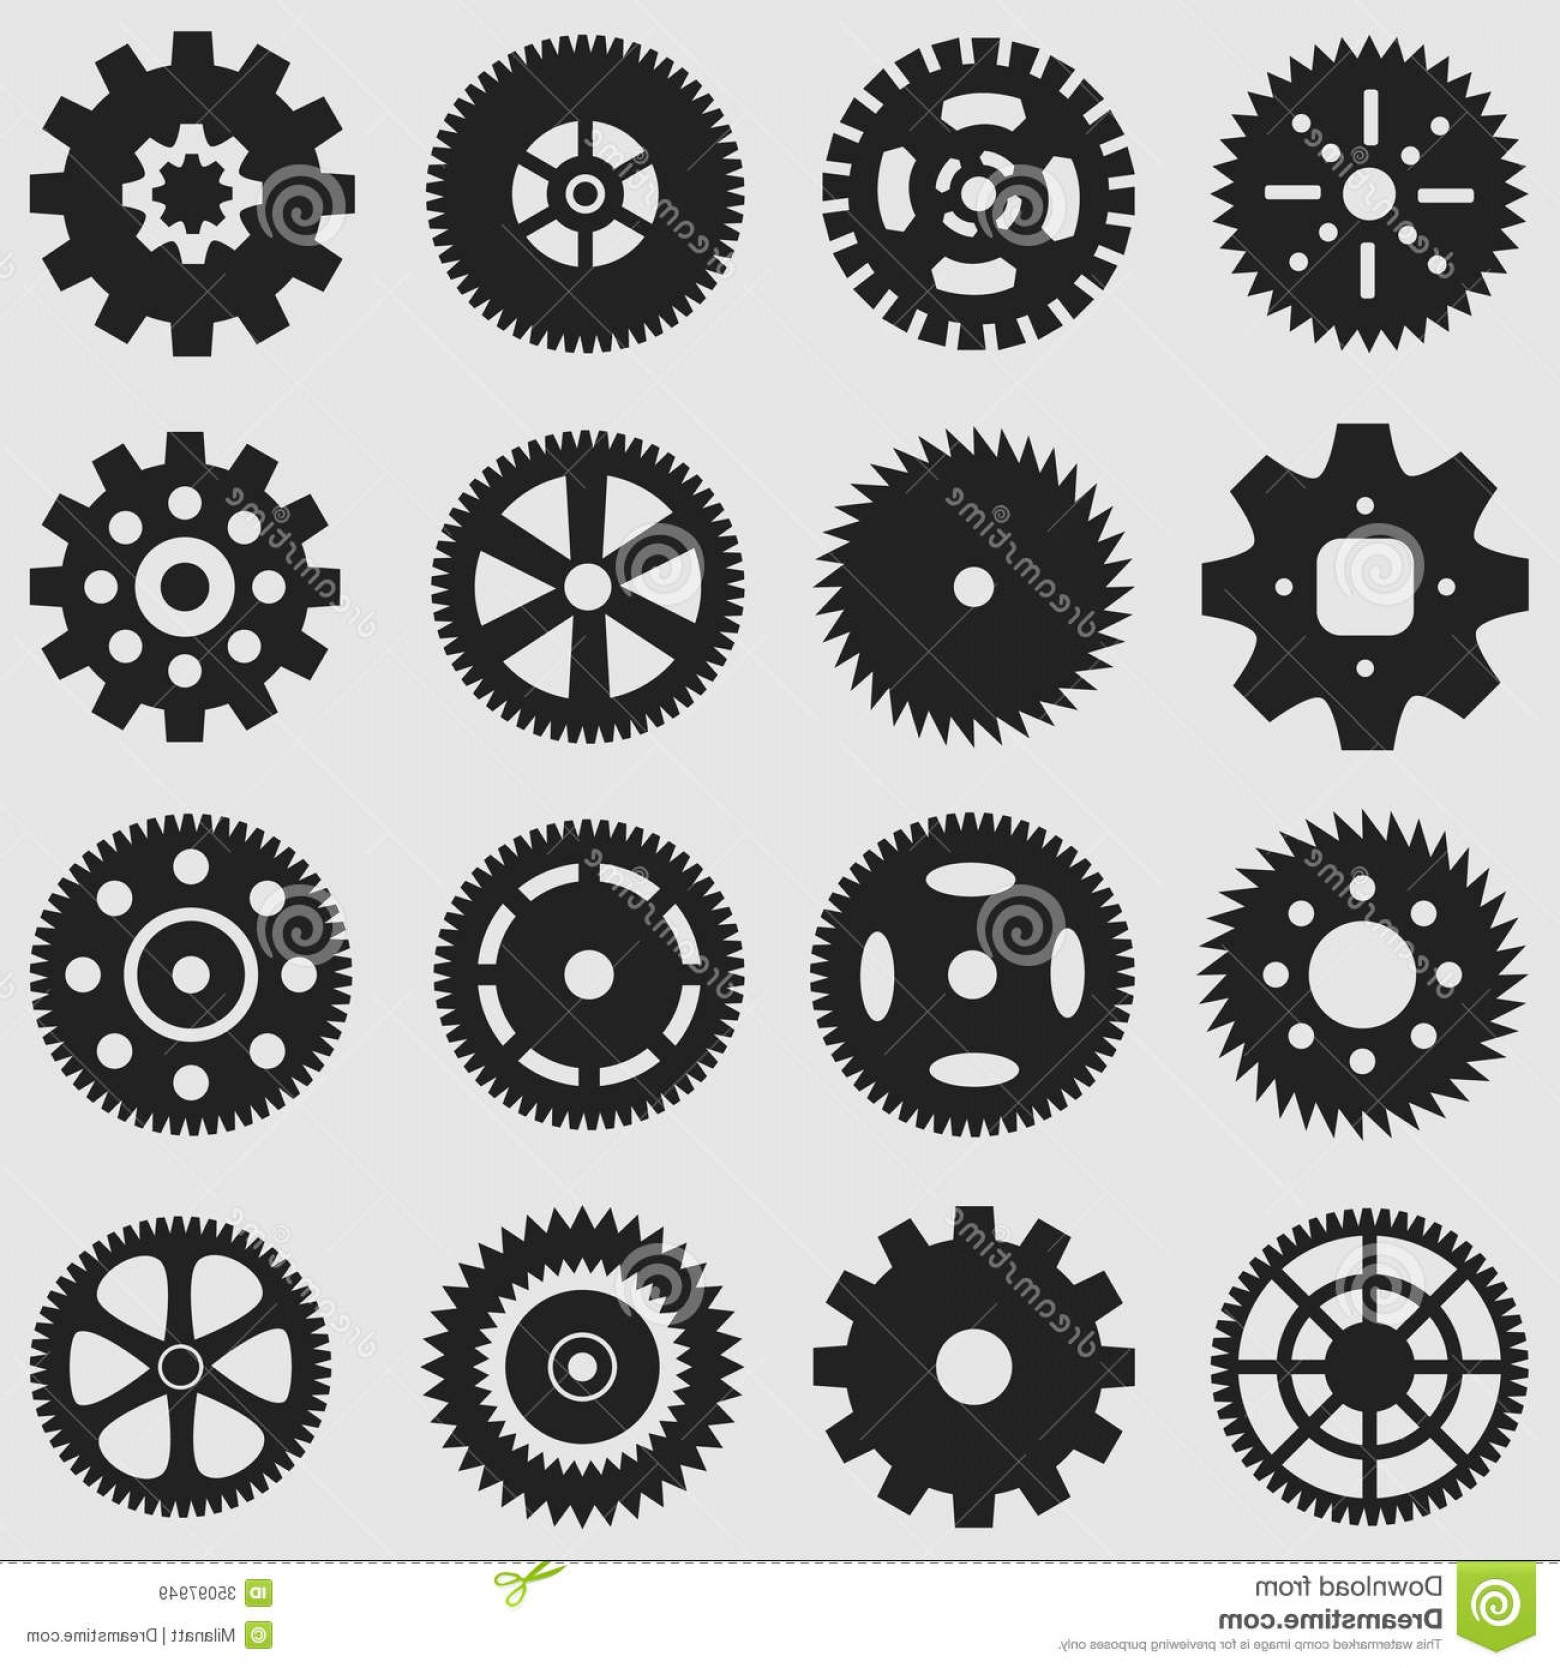 Vector Mechanical Clock Wheels: Royalty Free Stock Images Mechanical Cogs Gear Wheel Various Style Size Gears Wheels Silhouettes Image